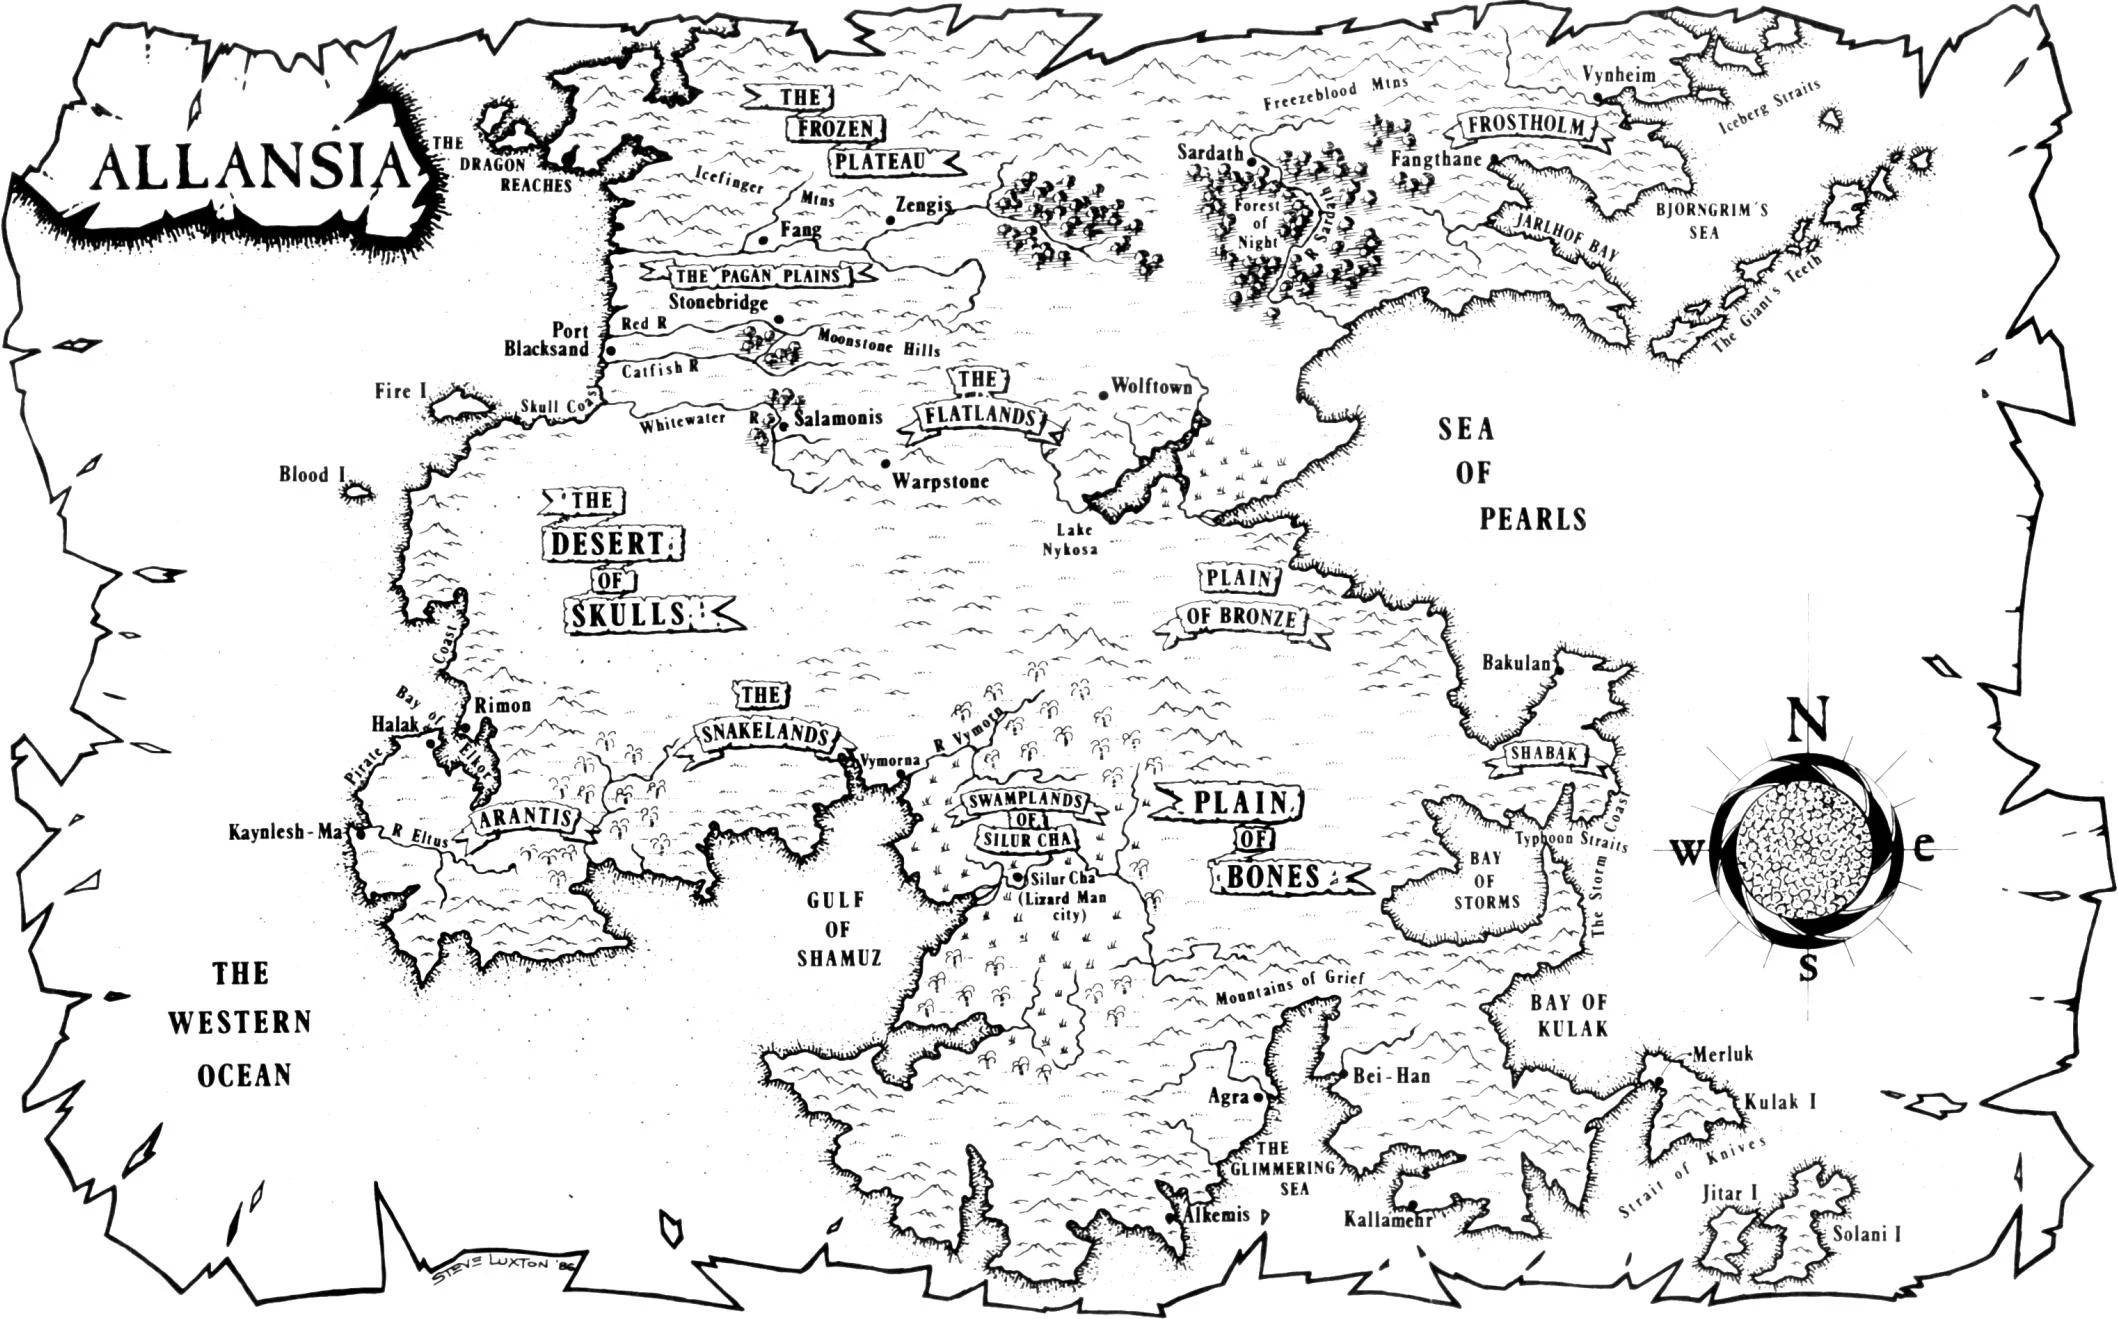 Ian Livingstone - Allansia_Map